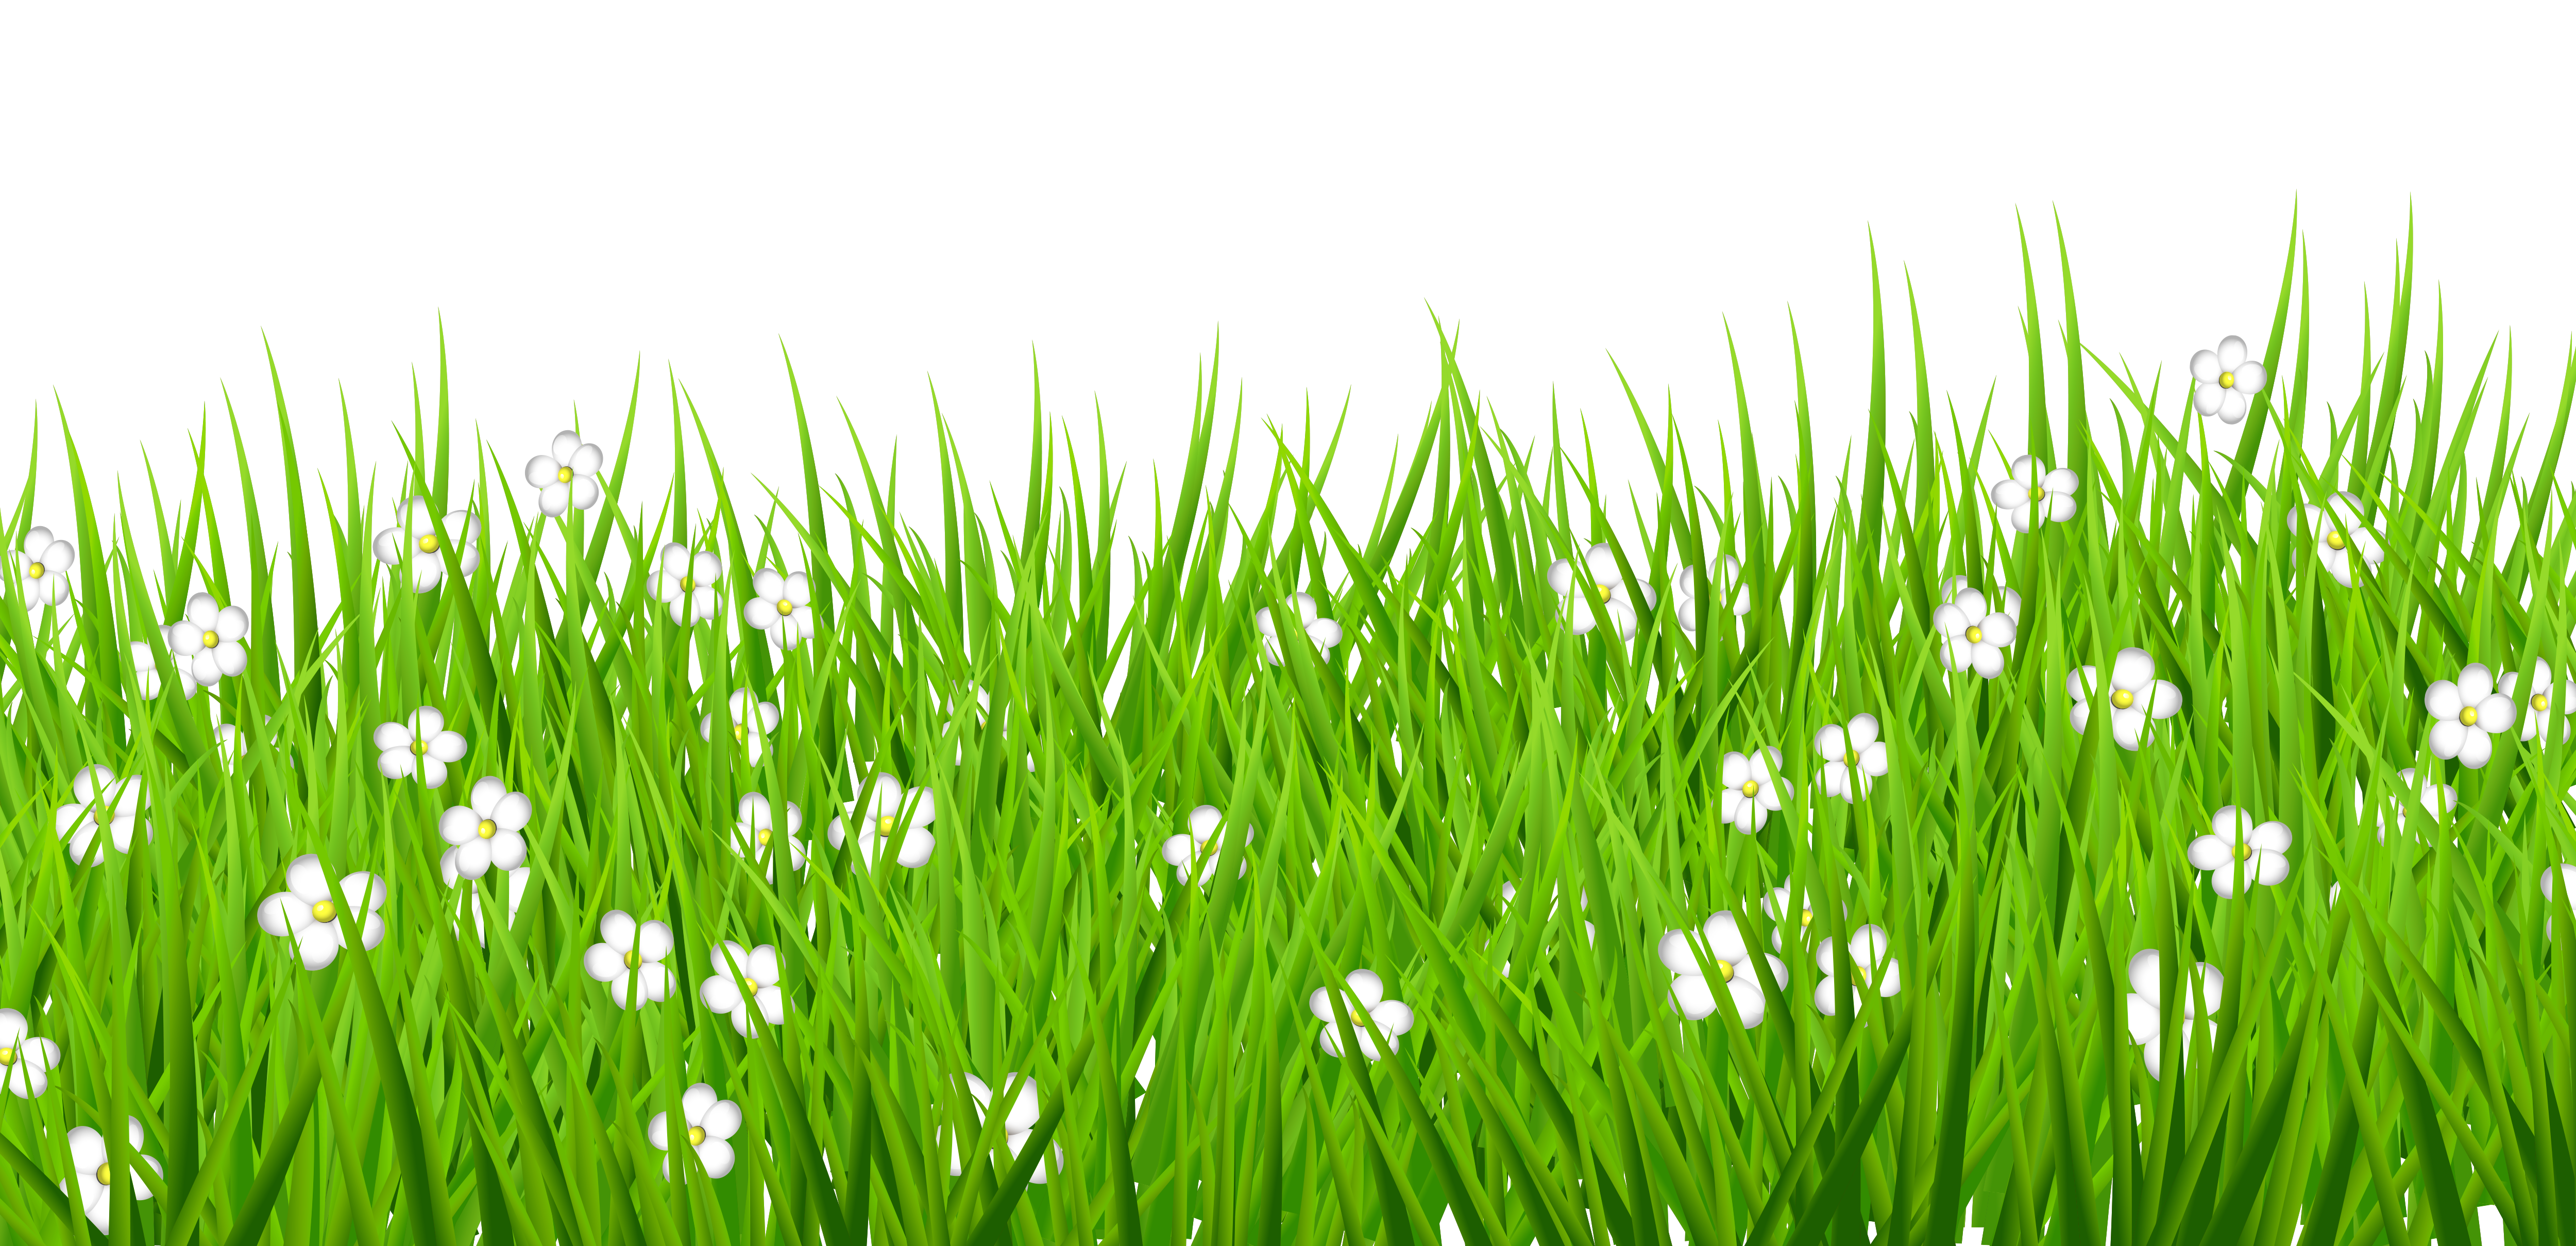 Grass graphic clipart free download Grass graphic clipart - ClipartFest free download